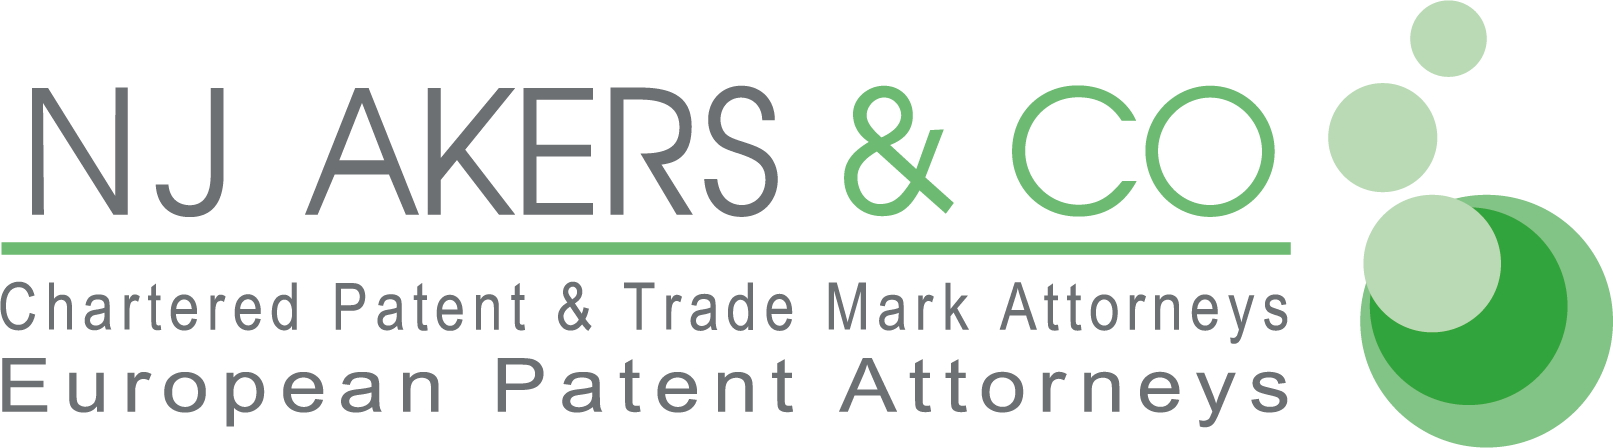 NJ Akers & Co, Chartered Patent Attorneys, European Patent and Trade Mark Attorneys